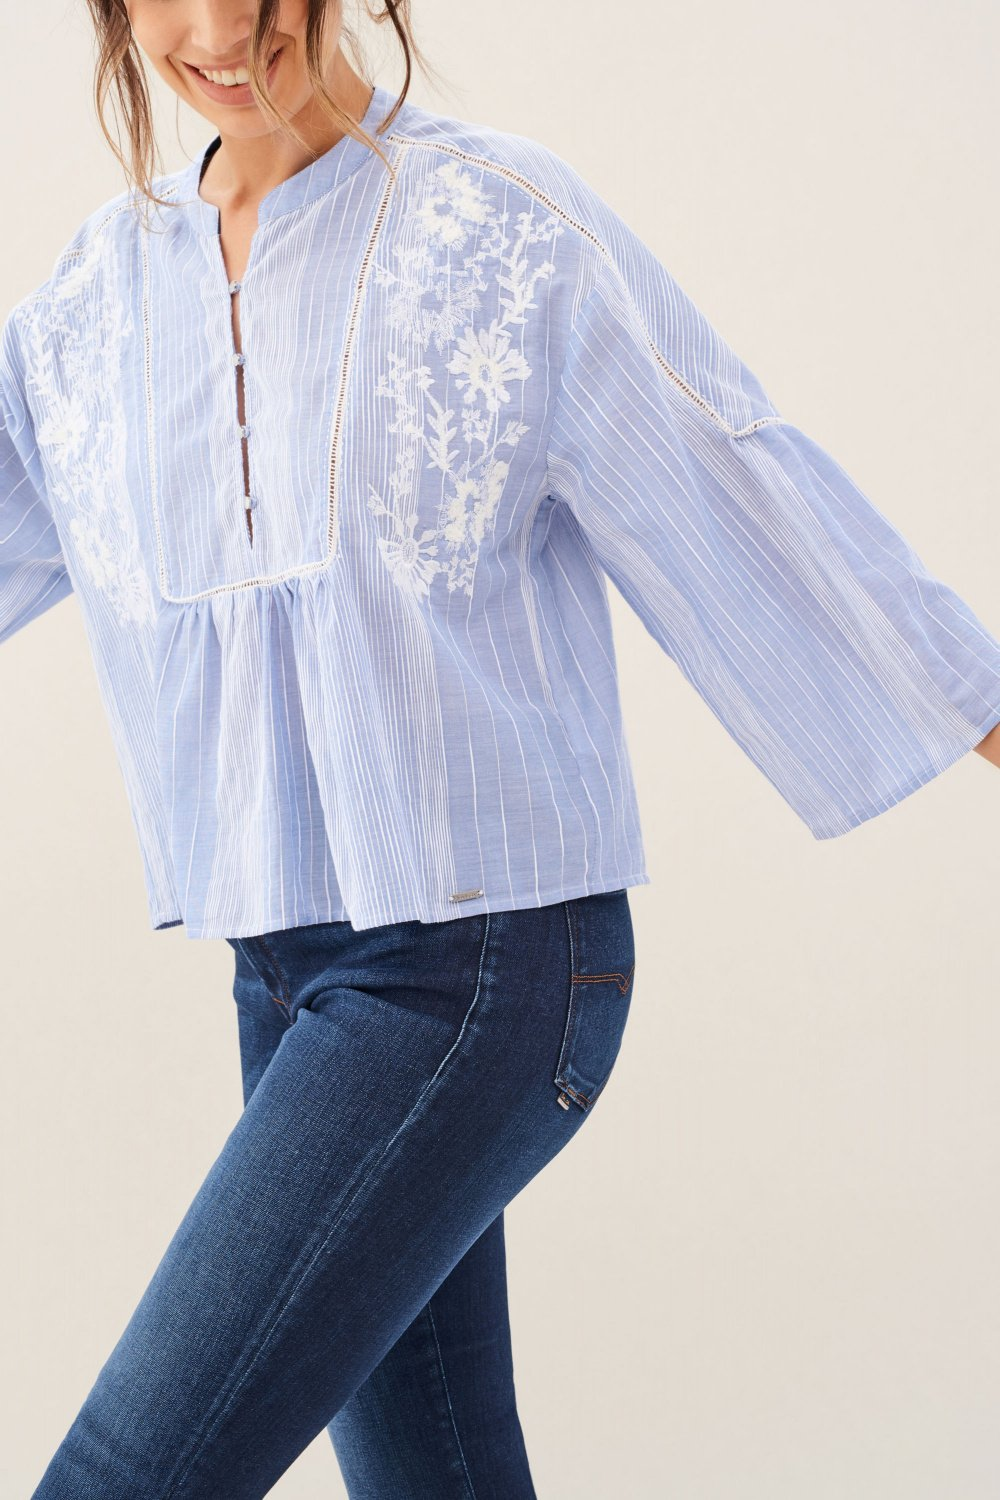 Blouse with embroidery - Salsa